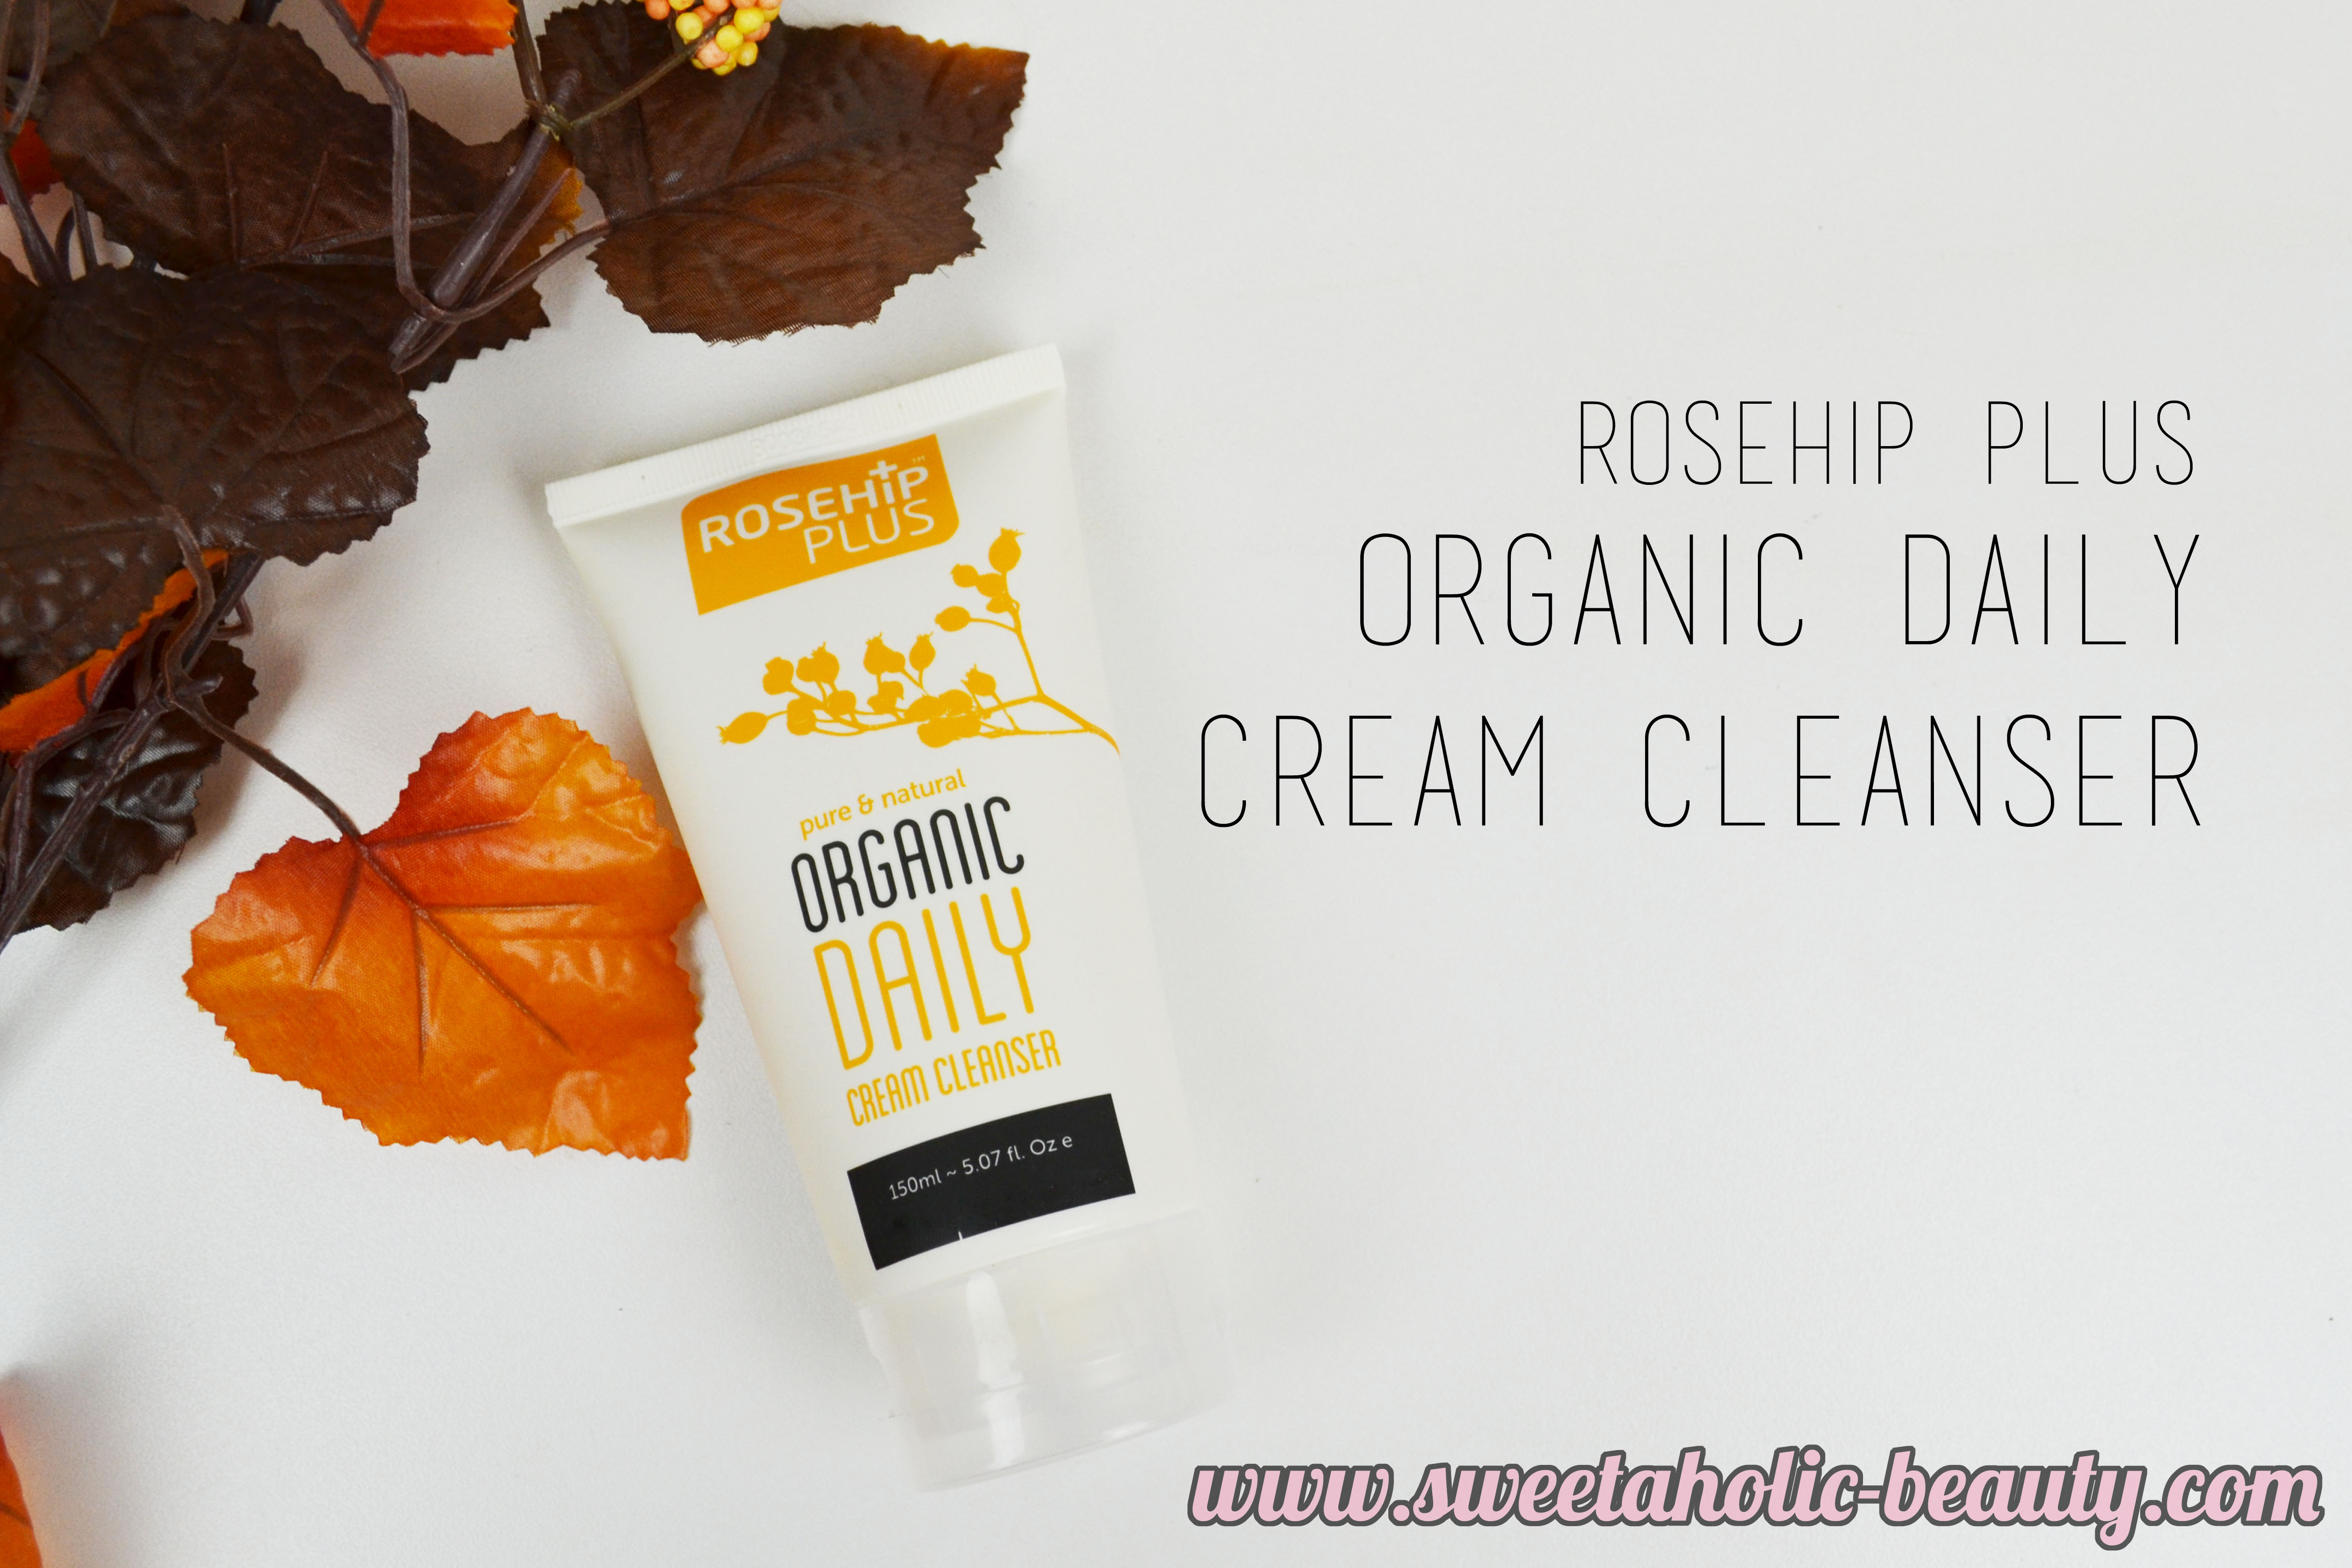 Rosehip Plus Organic Daily Cream Cleanser Review - Sweetaholic Beauty